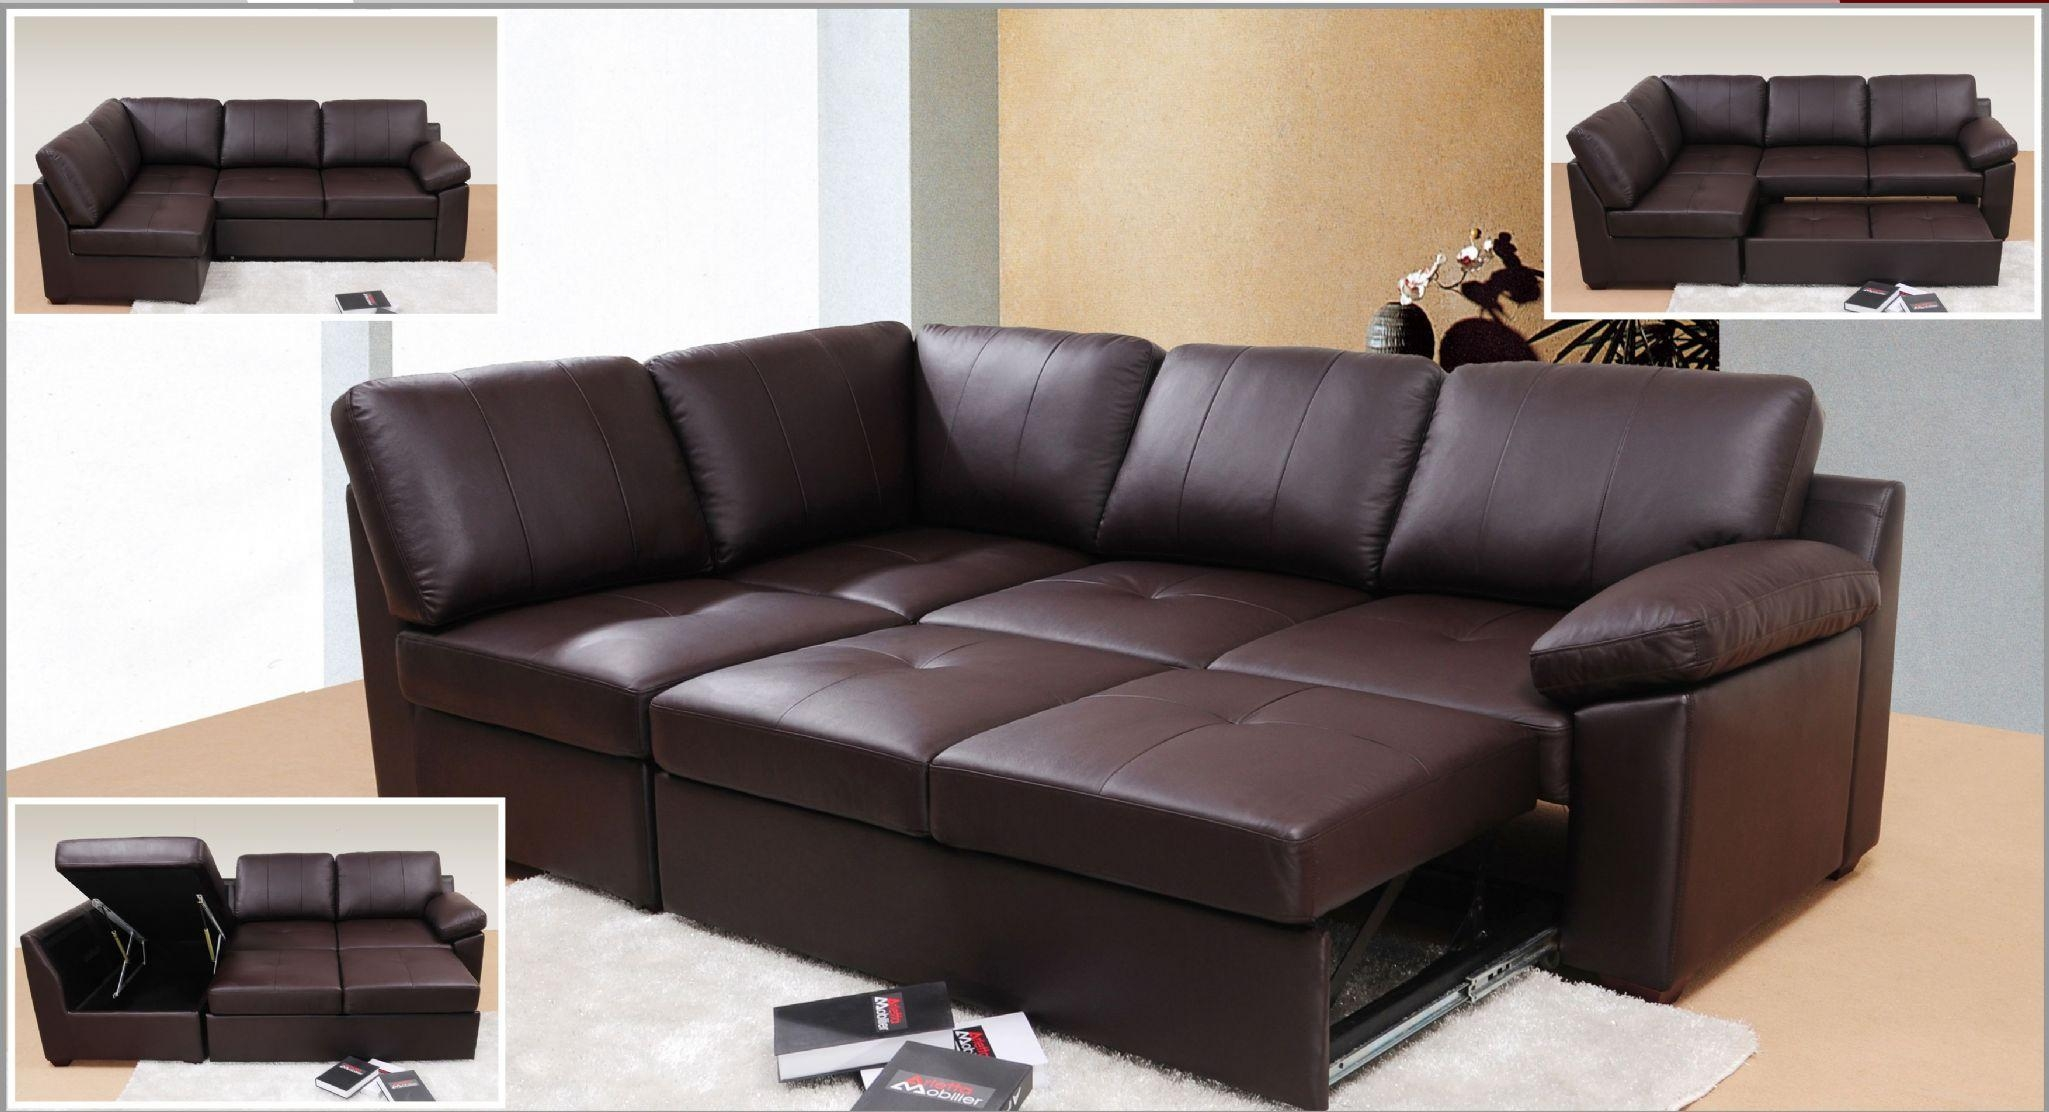 Lovable Corner Sleeper Sofa Perfect Furniture Home Design Ideas Intended For Corner Sleeper Sofas (View 1 of 20)